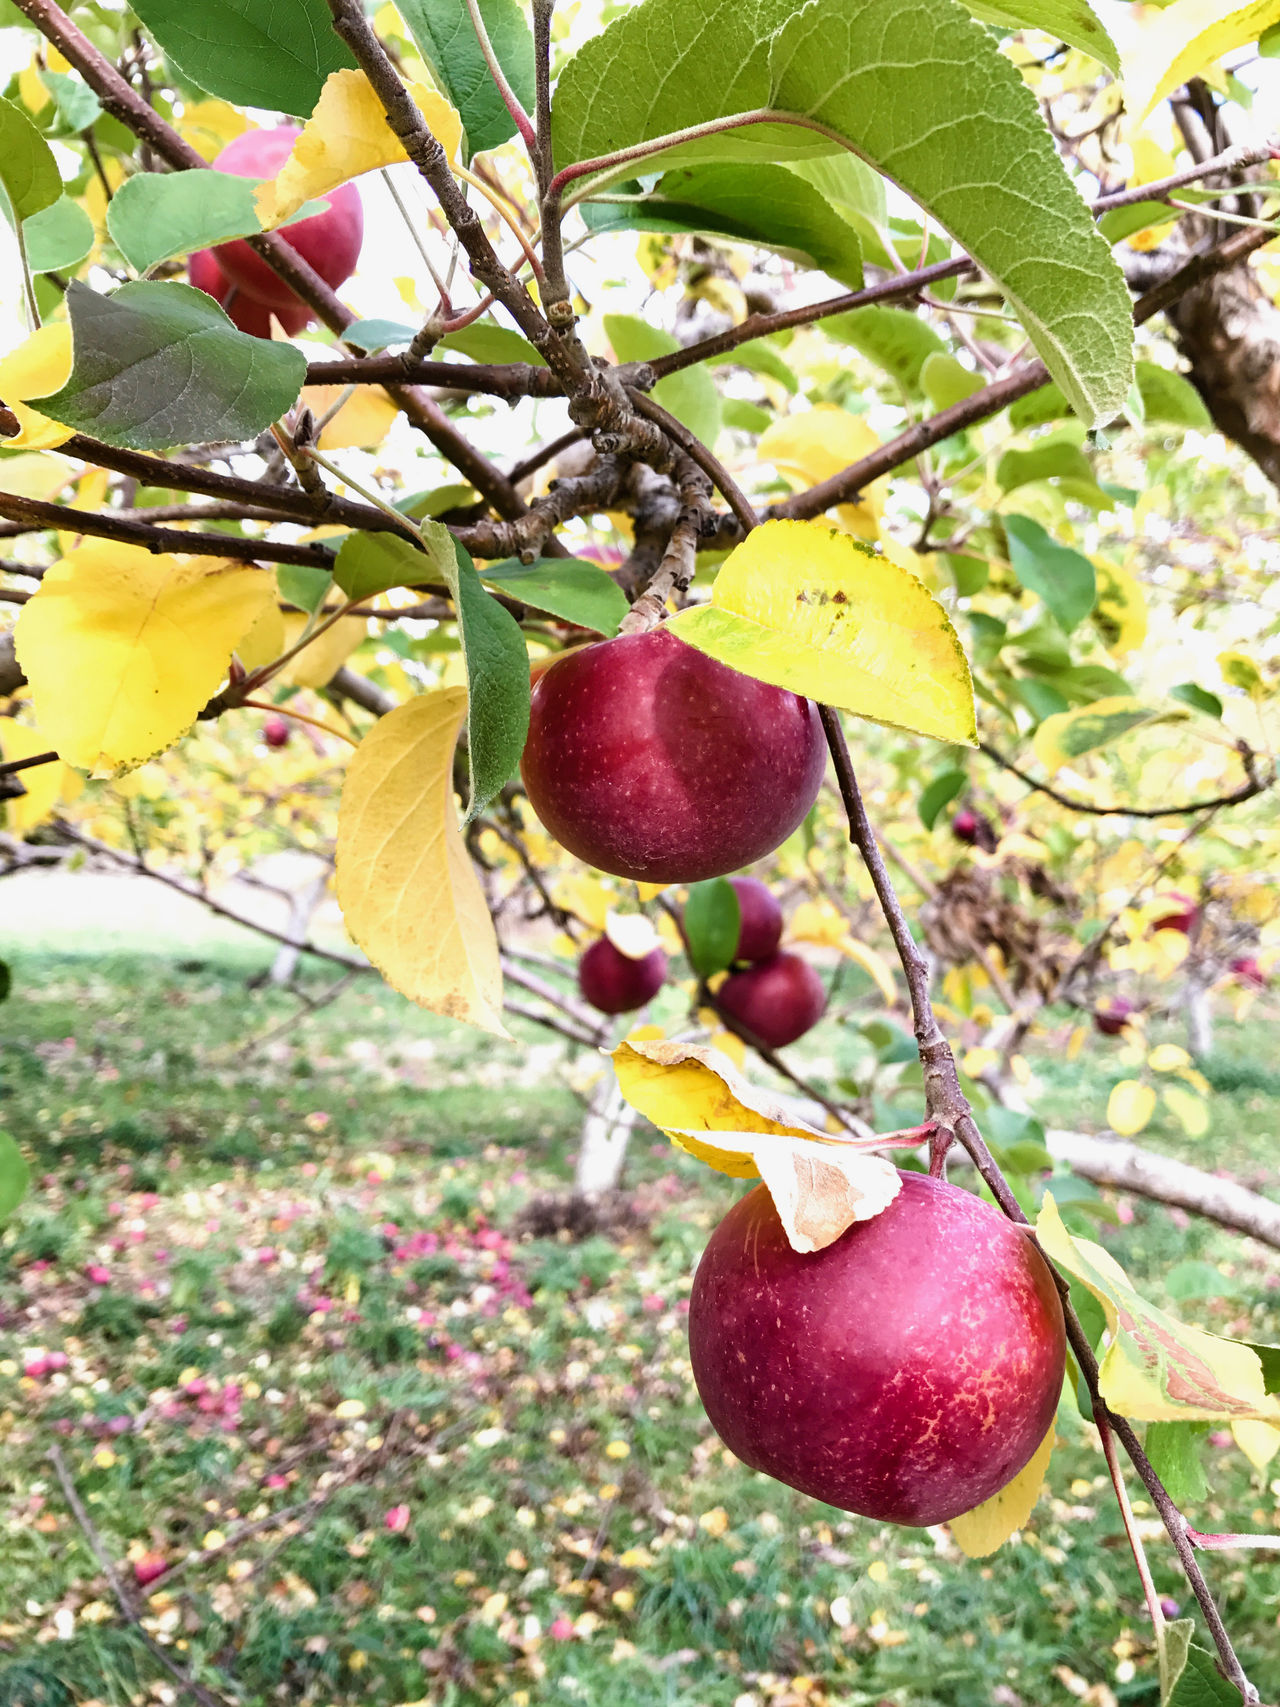 Apple picking in the Catskills, New York, USA. Photo by Tom Bland. Agriculture Apple Apple Picking Apples Autumn Autumnal Close-up Fall Food Food And Drink Freshness Fruit Growth Hanging Healthy Eating IPhone IPhoneography New York Orchard Orchards Outdoors Rural Seasonal Seasonal Fruit Tree